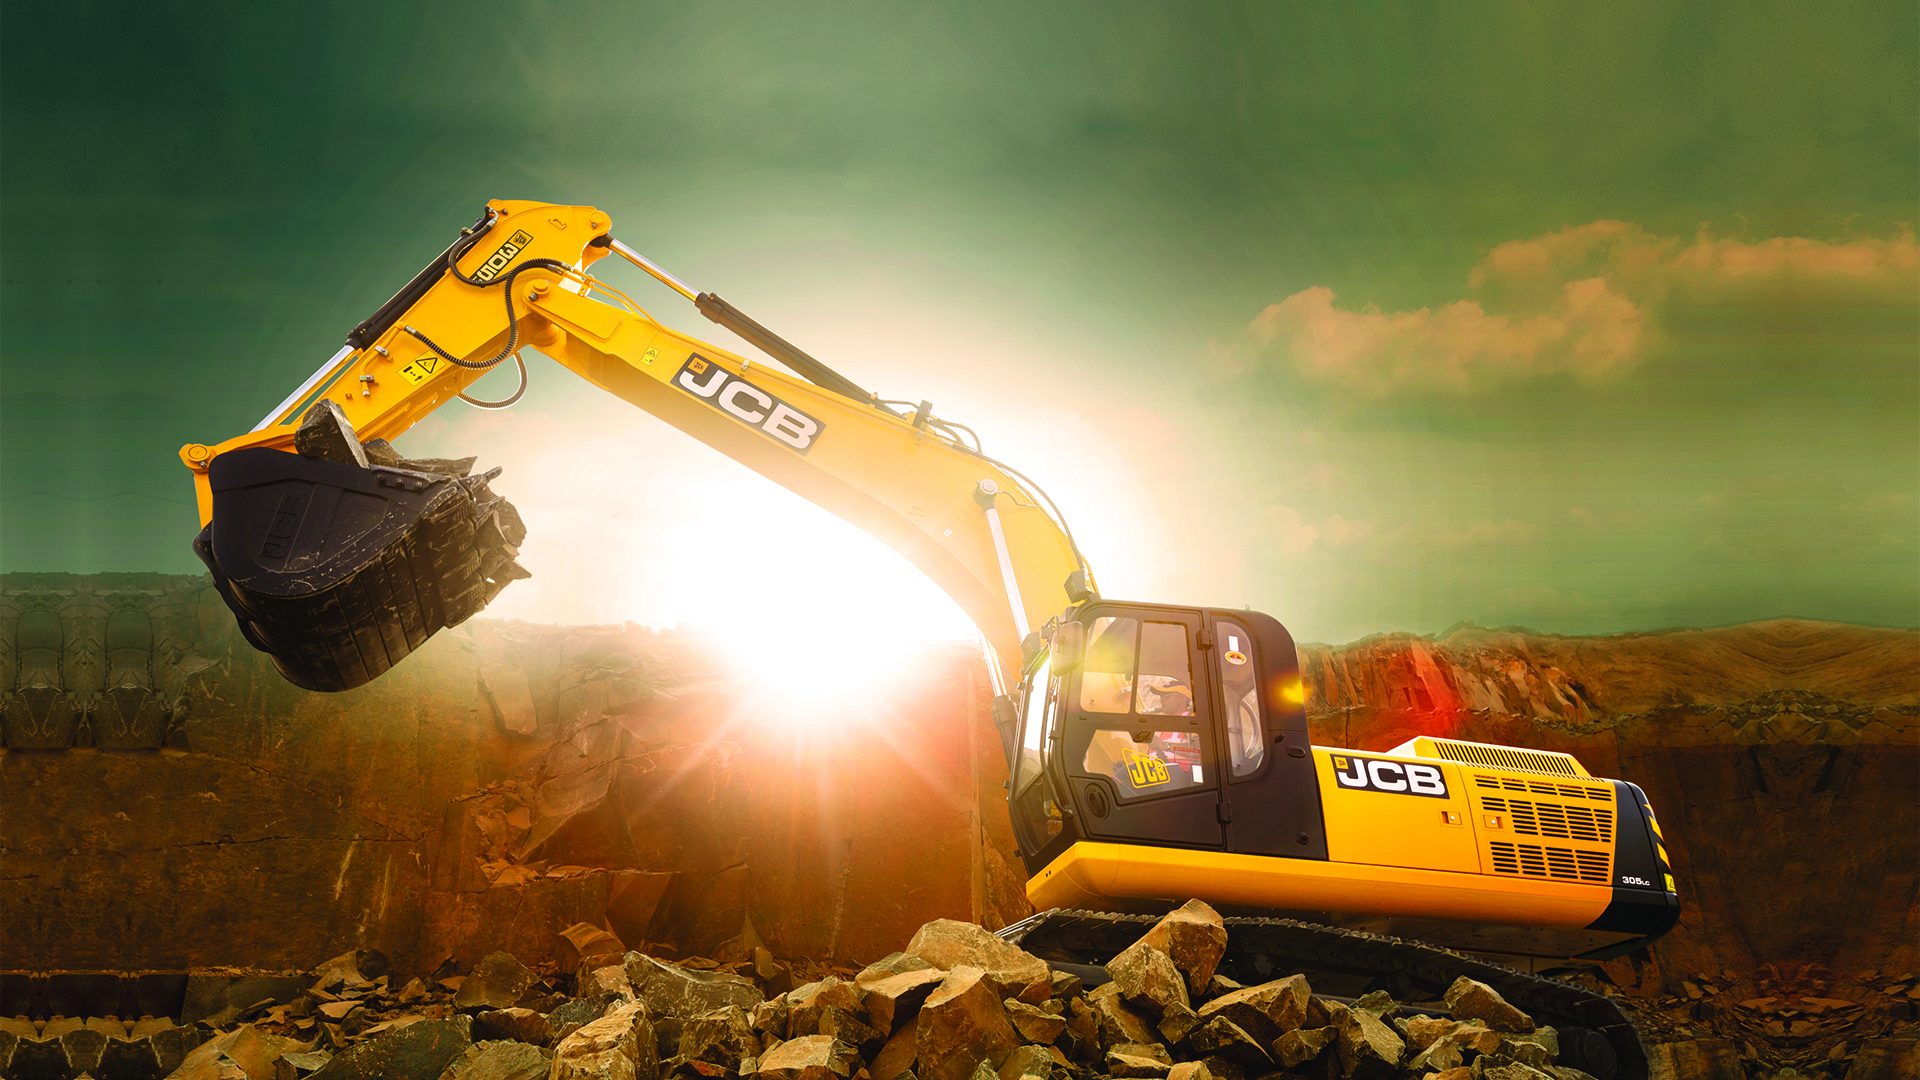 JCB 305LC Tracked Excavator Images